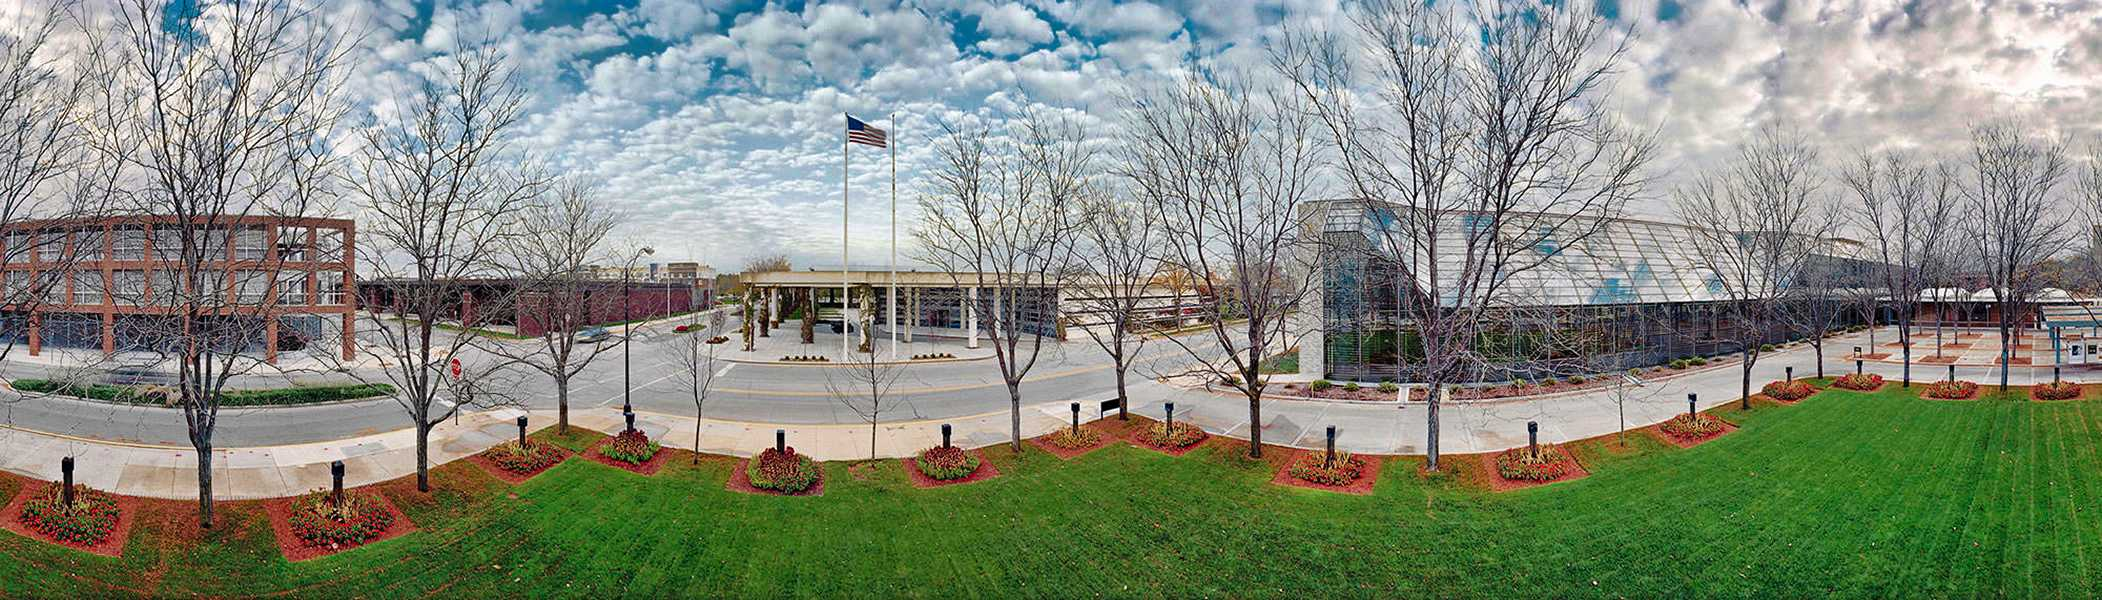 Fifth-and-Jackson-Streets-panorama-by-Thomas-Schiff-2